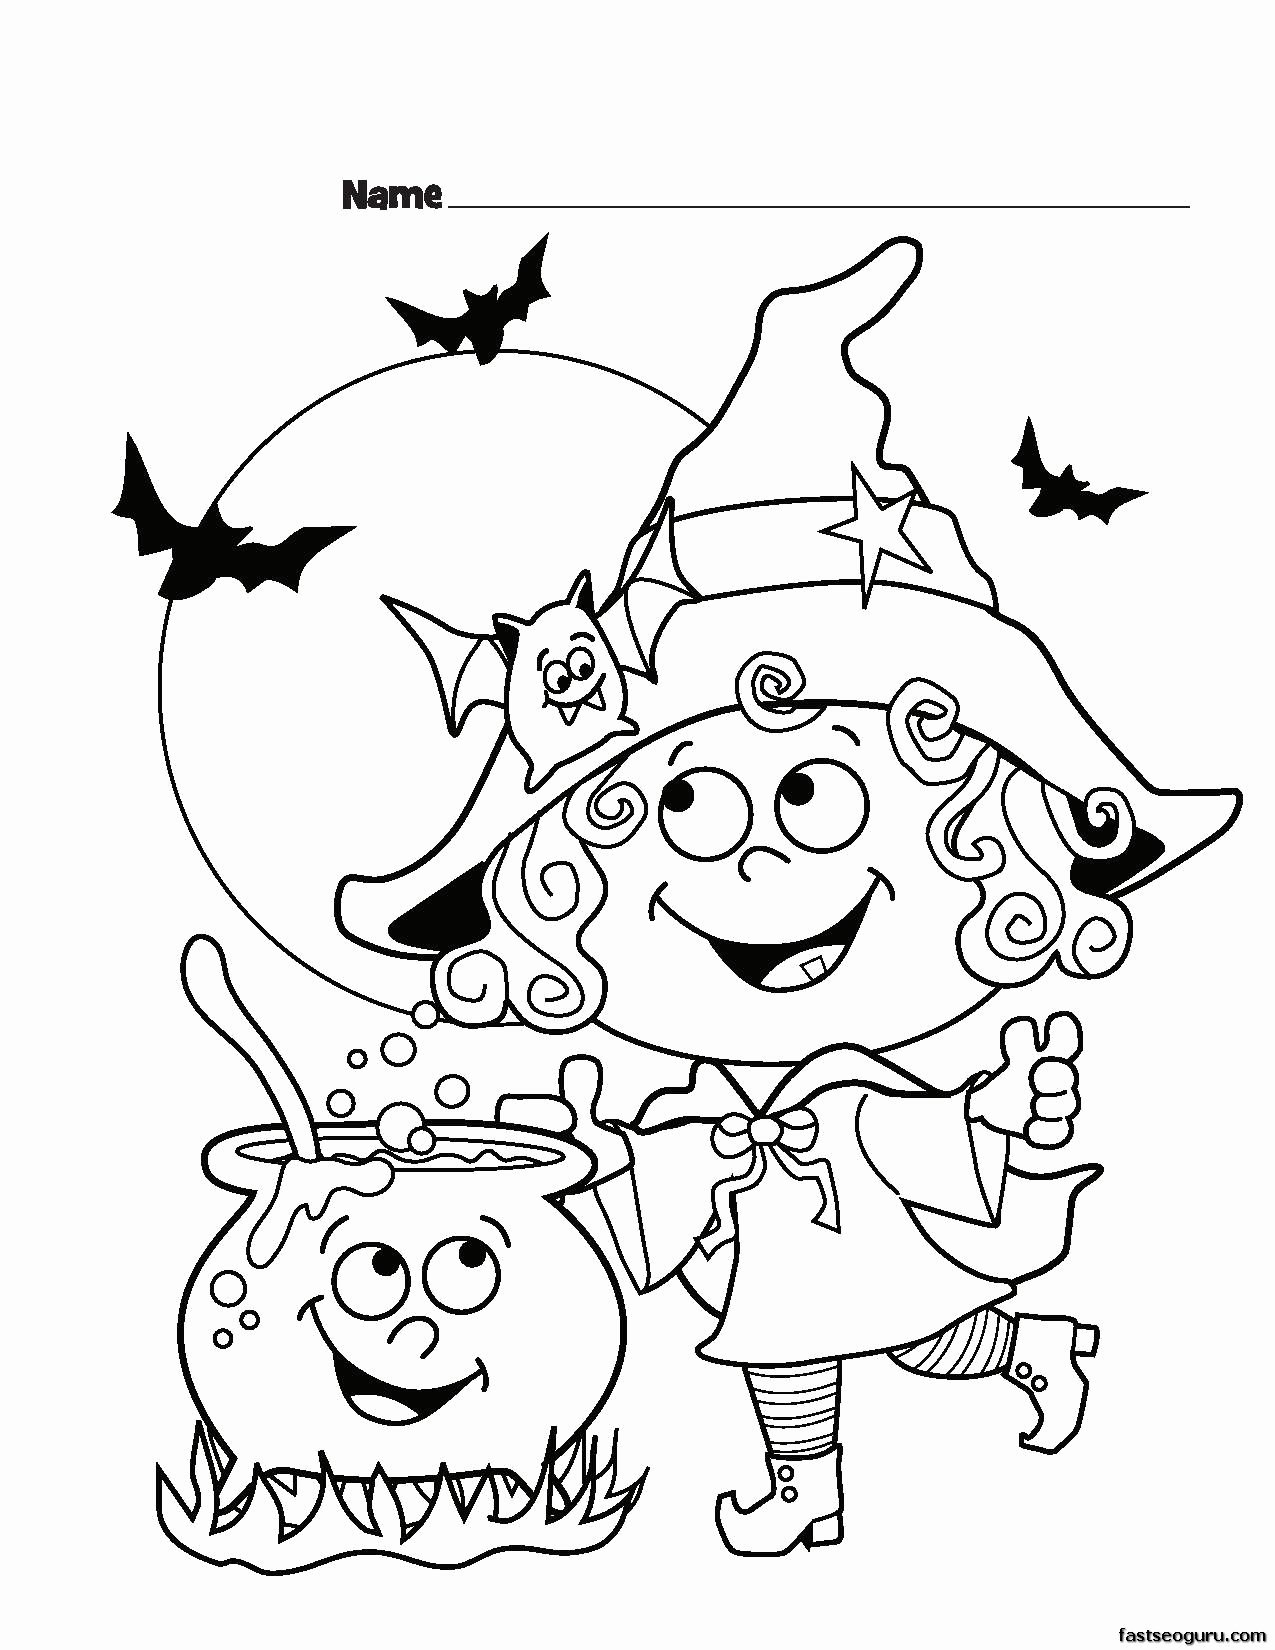 Painting Worksheets for Preschoolers Awesome Worksheets Halloween Activity Sheets for Preschoolers